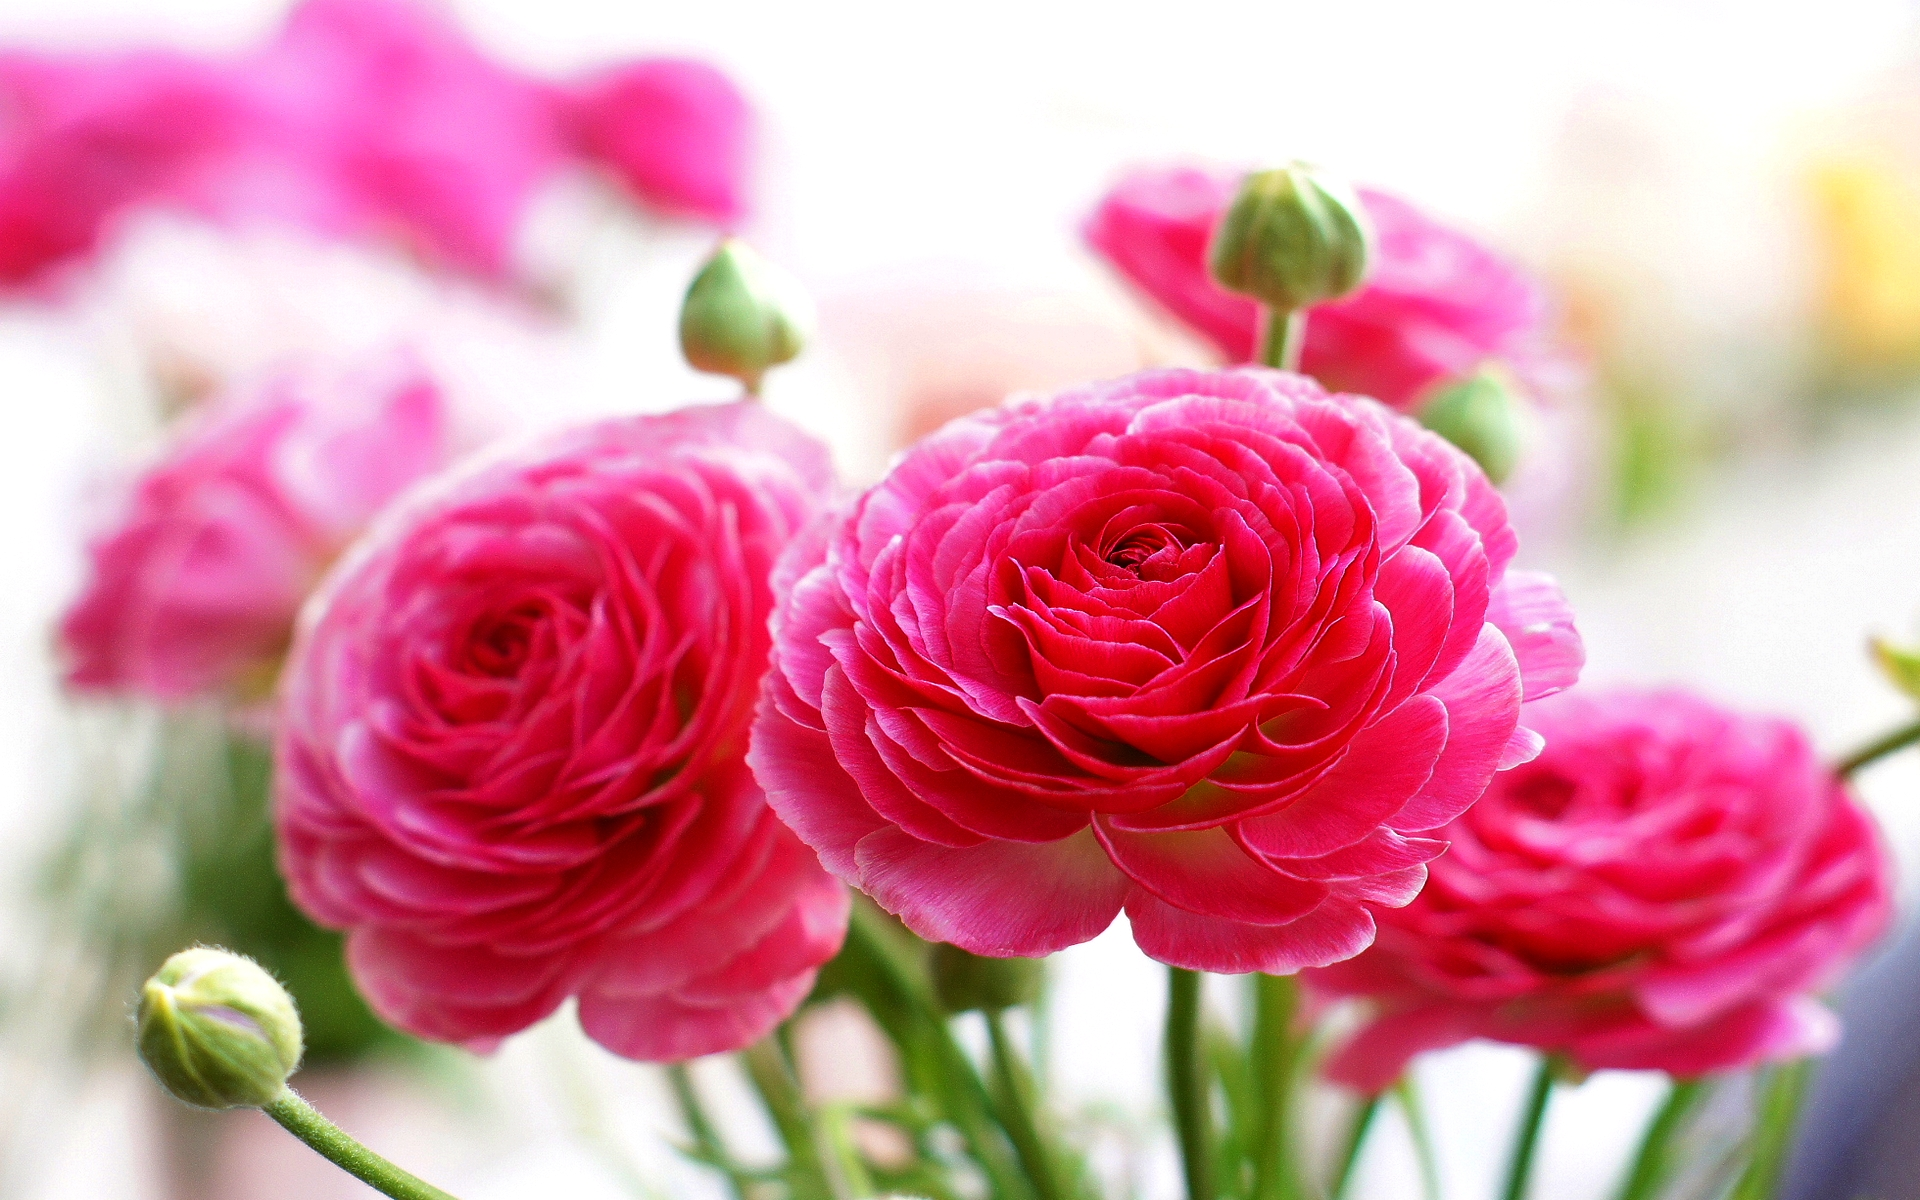 Pink rose hd wallpapers - Pink rose hd wallpaper ...